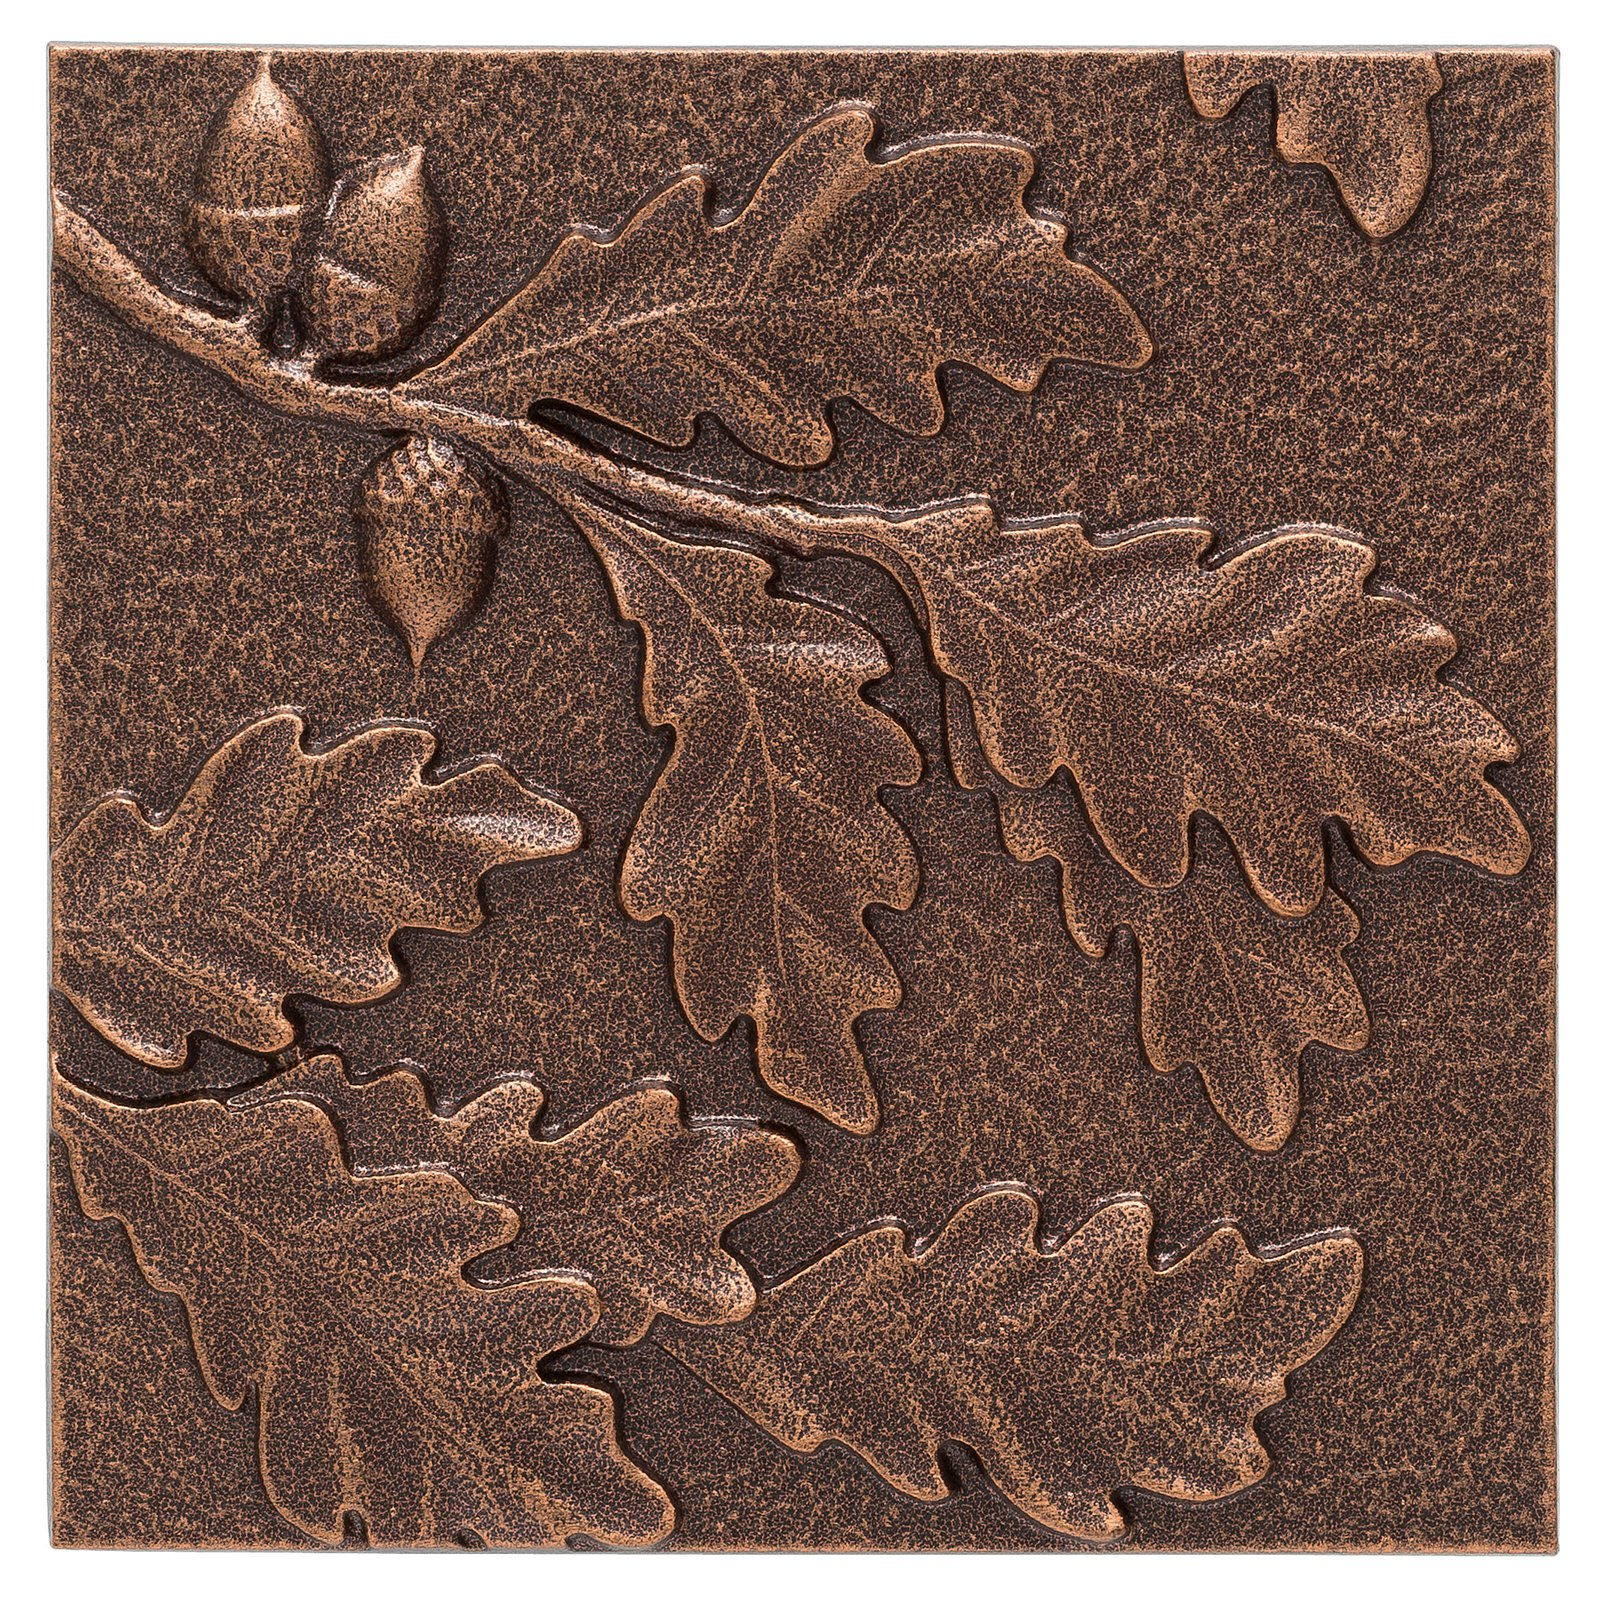 Oak Leaf Wall Decor